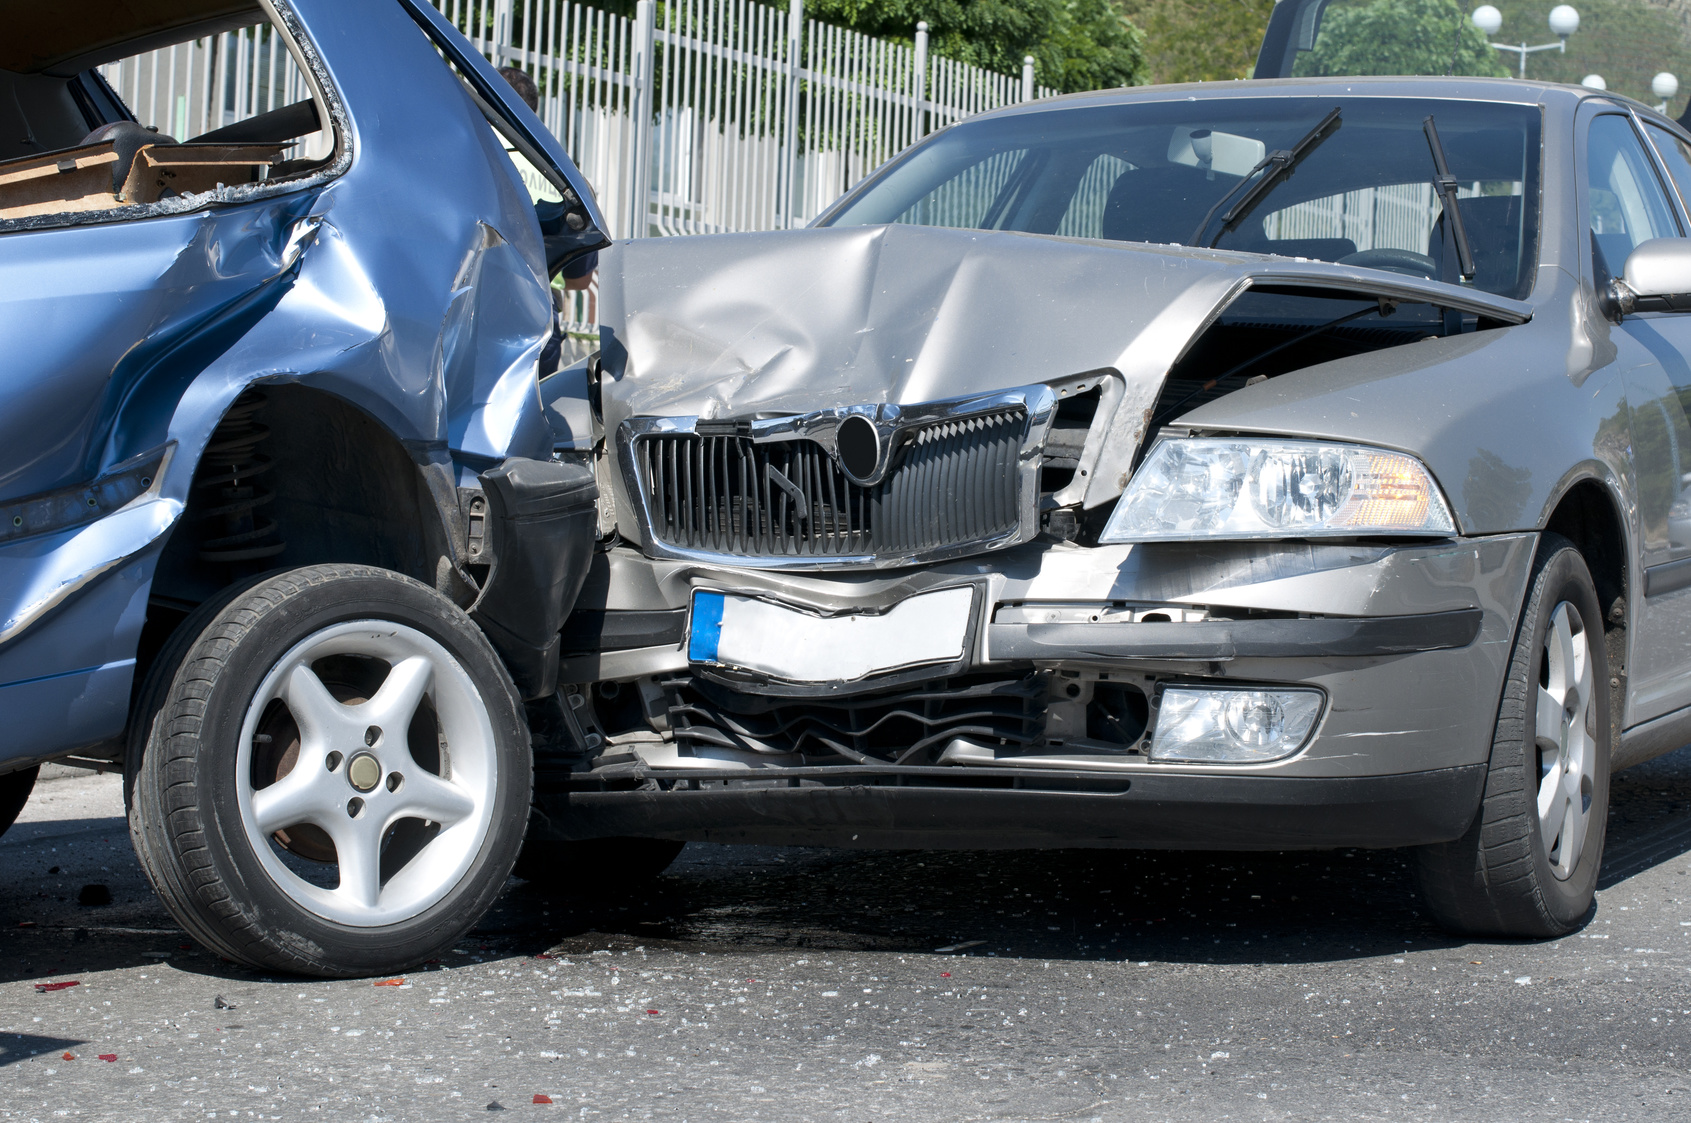 Prescription Drugs To Blame For Growing Cause of Accidents